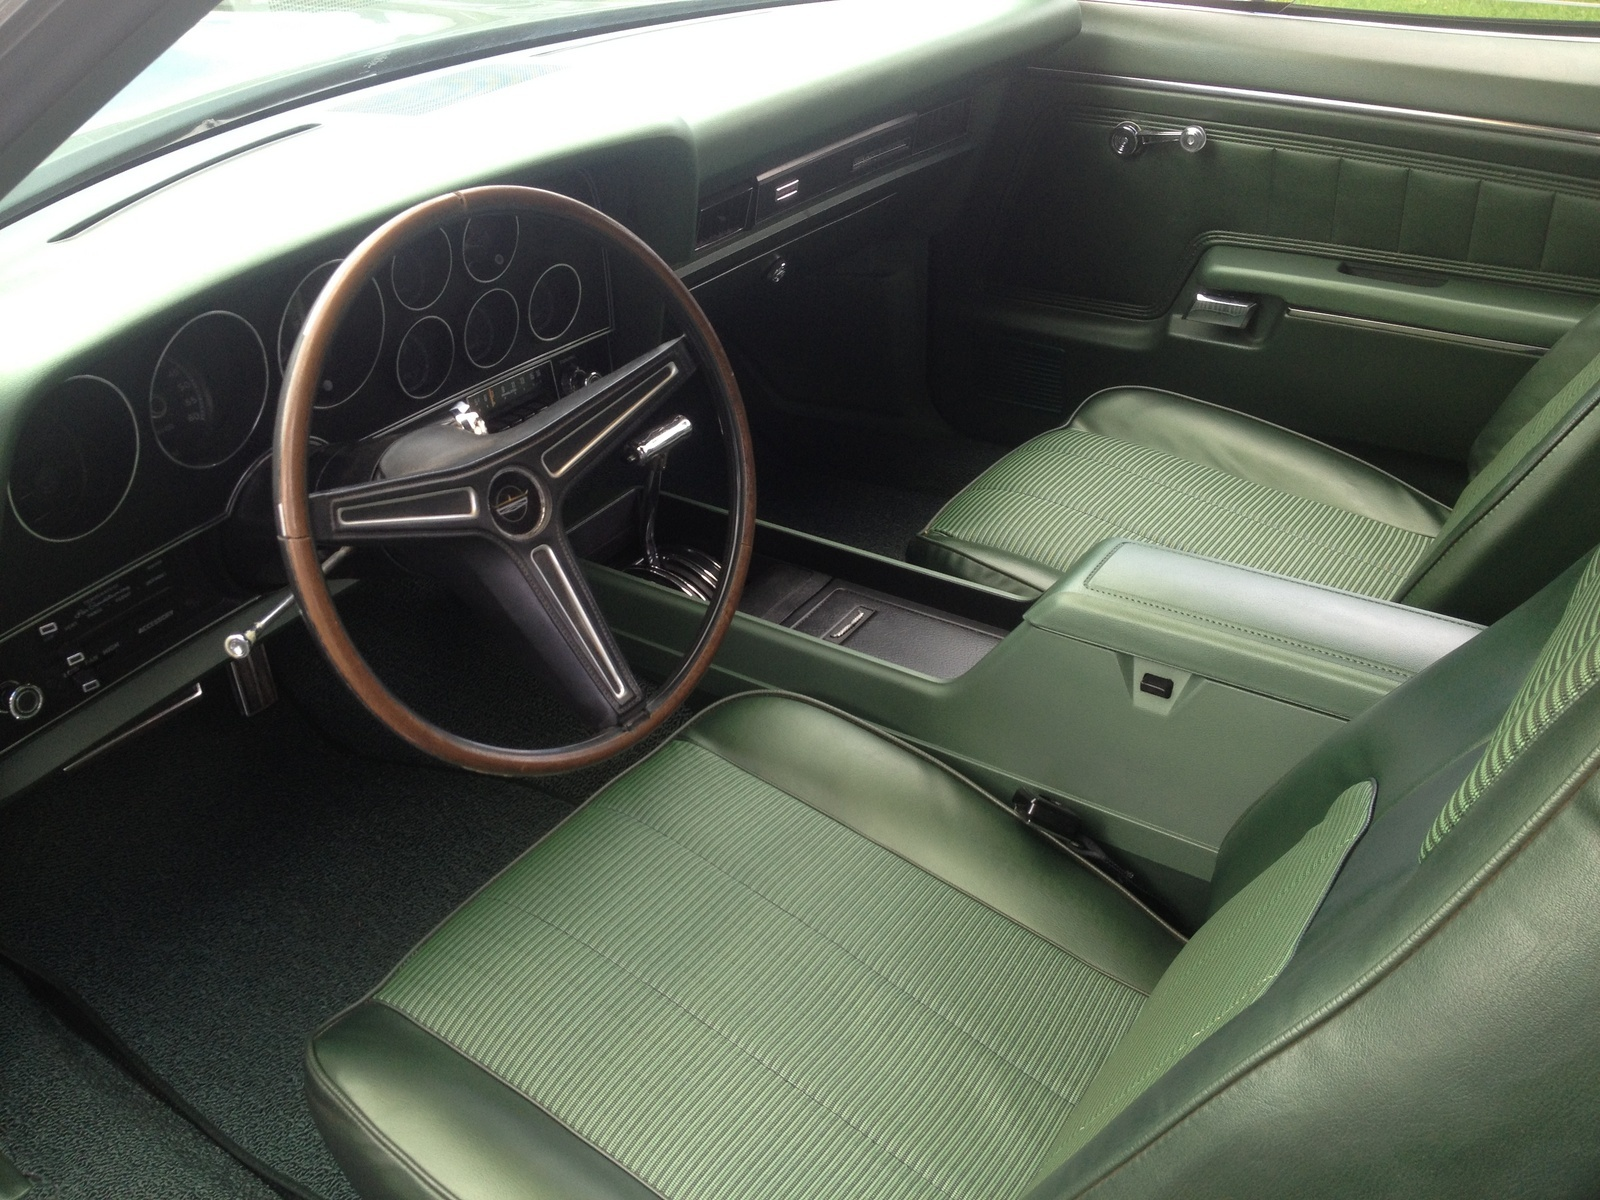 Ford Torino Questions - Looking for a 1972 Ford Gran Torino Sport ...